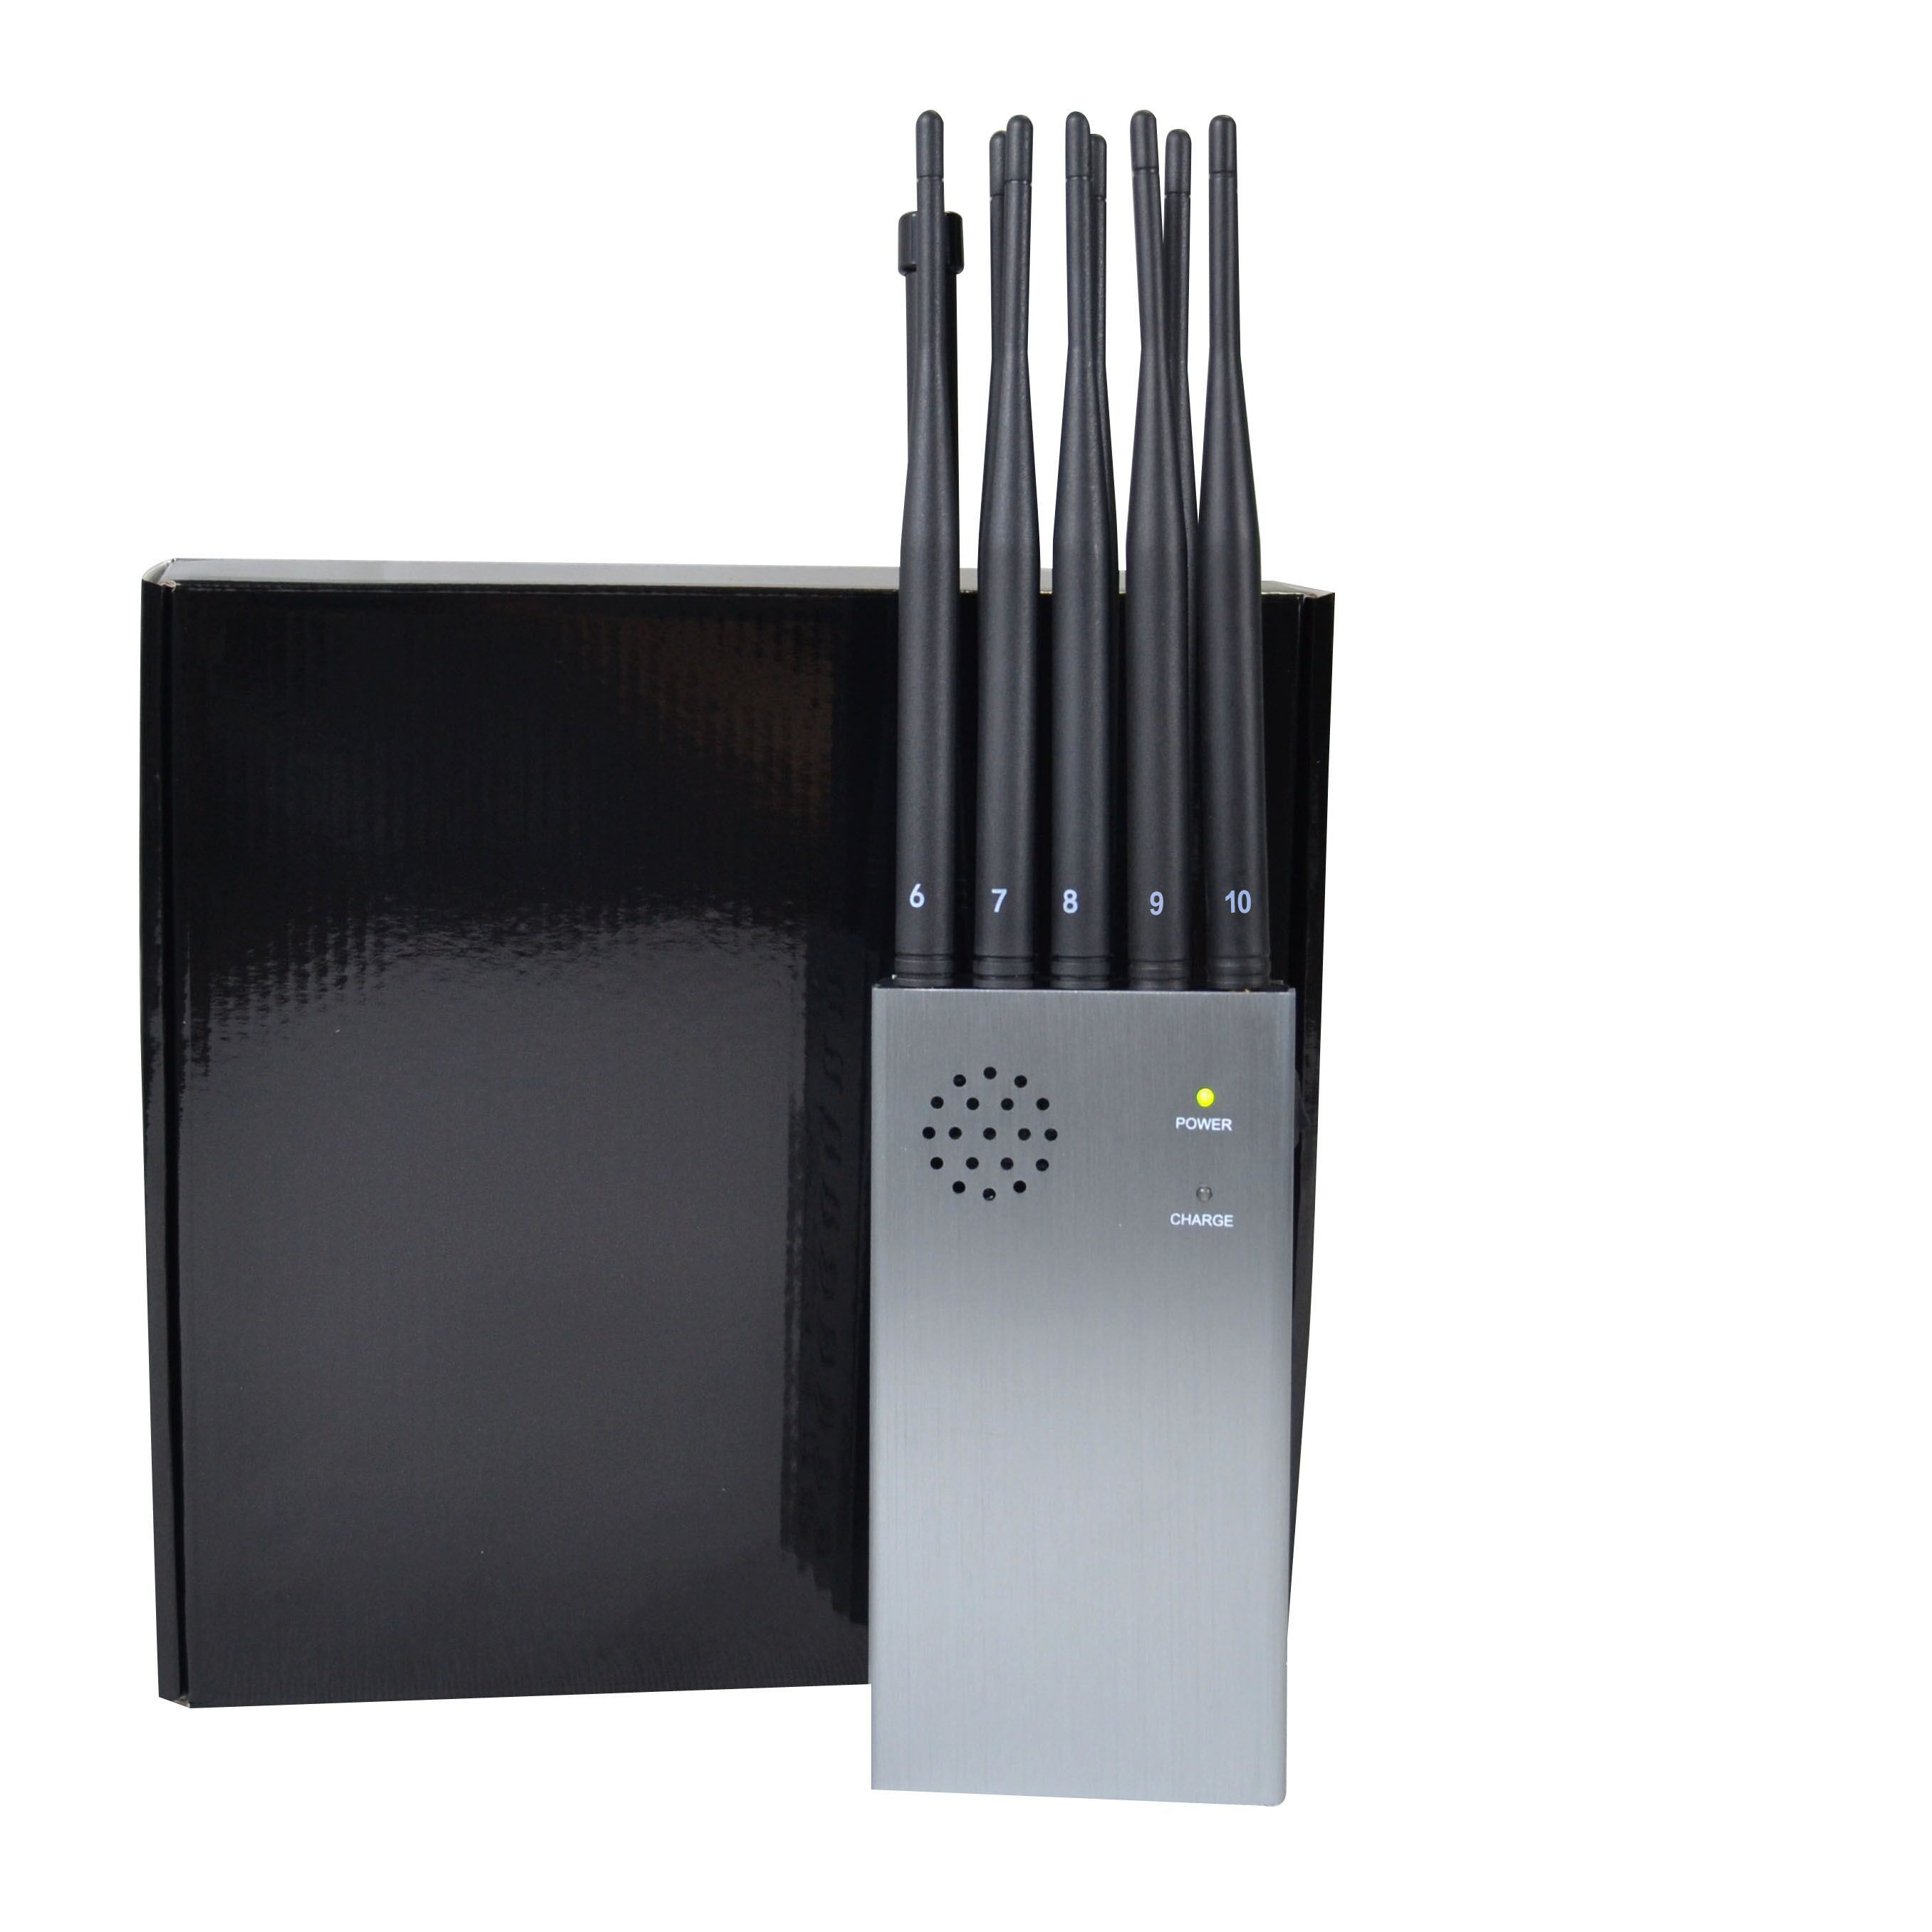 Android buy - China Power King Jammers of Cpjp10 with 8000mA 2g 3G 4G 5g Remote Control Jammers for 2g 3G 4G 5g Lojack - China 8000mA Battery Jammer, Large Volume Power Signal Blocker